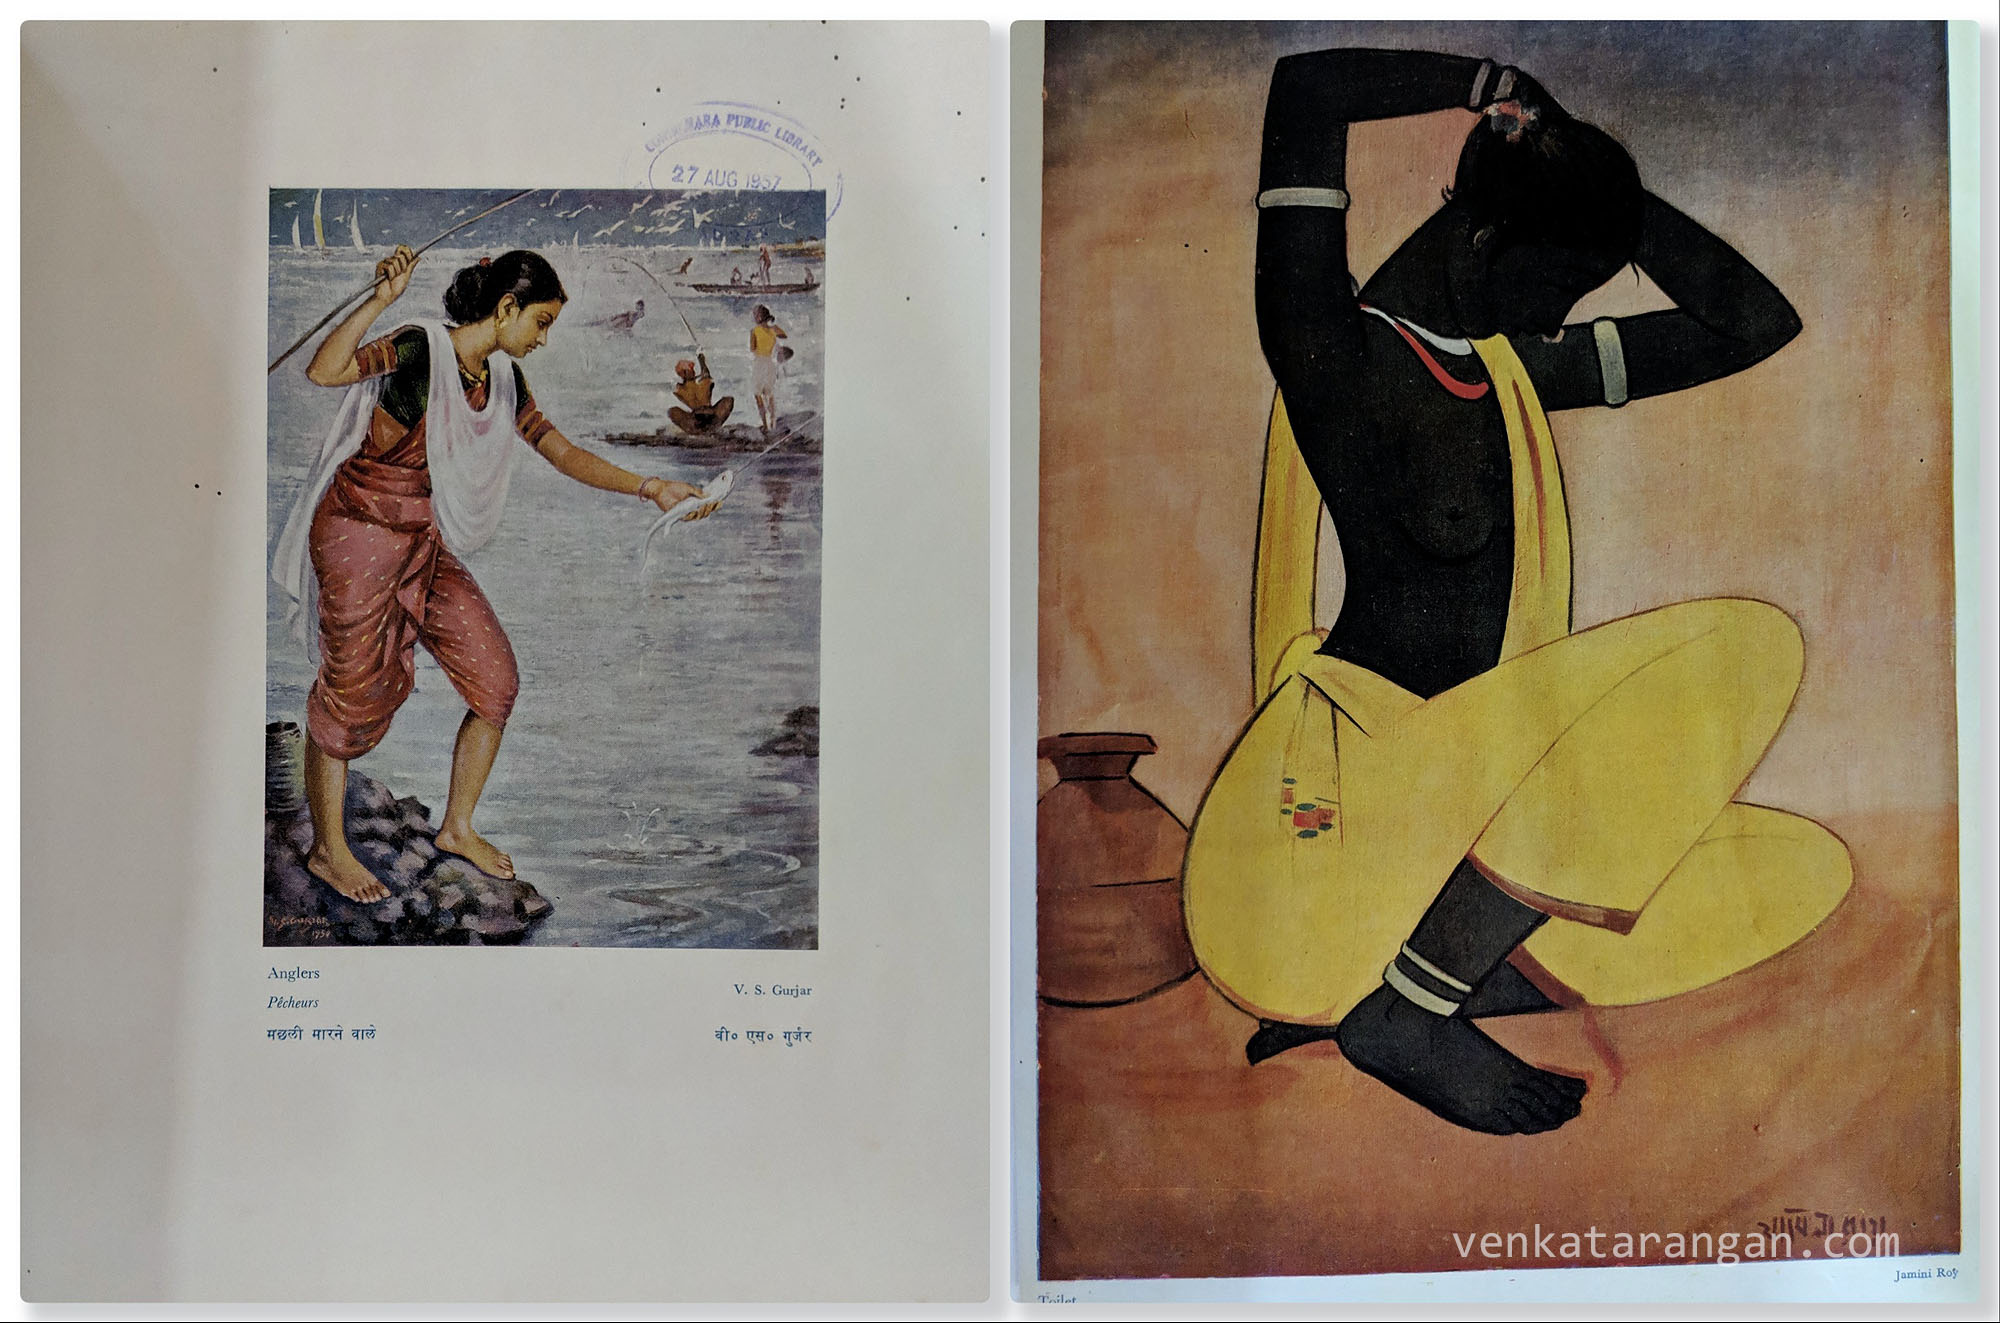 Pages from books showing paintings by famous artists - V.S.Gurjar's Anglers, Jamini Roy's Toilet.